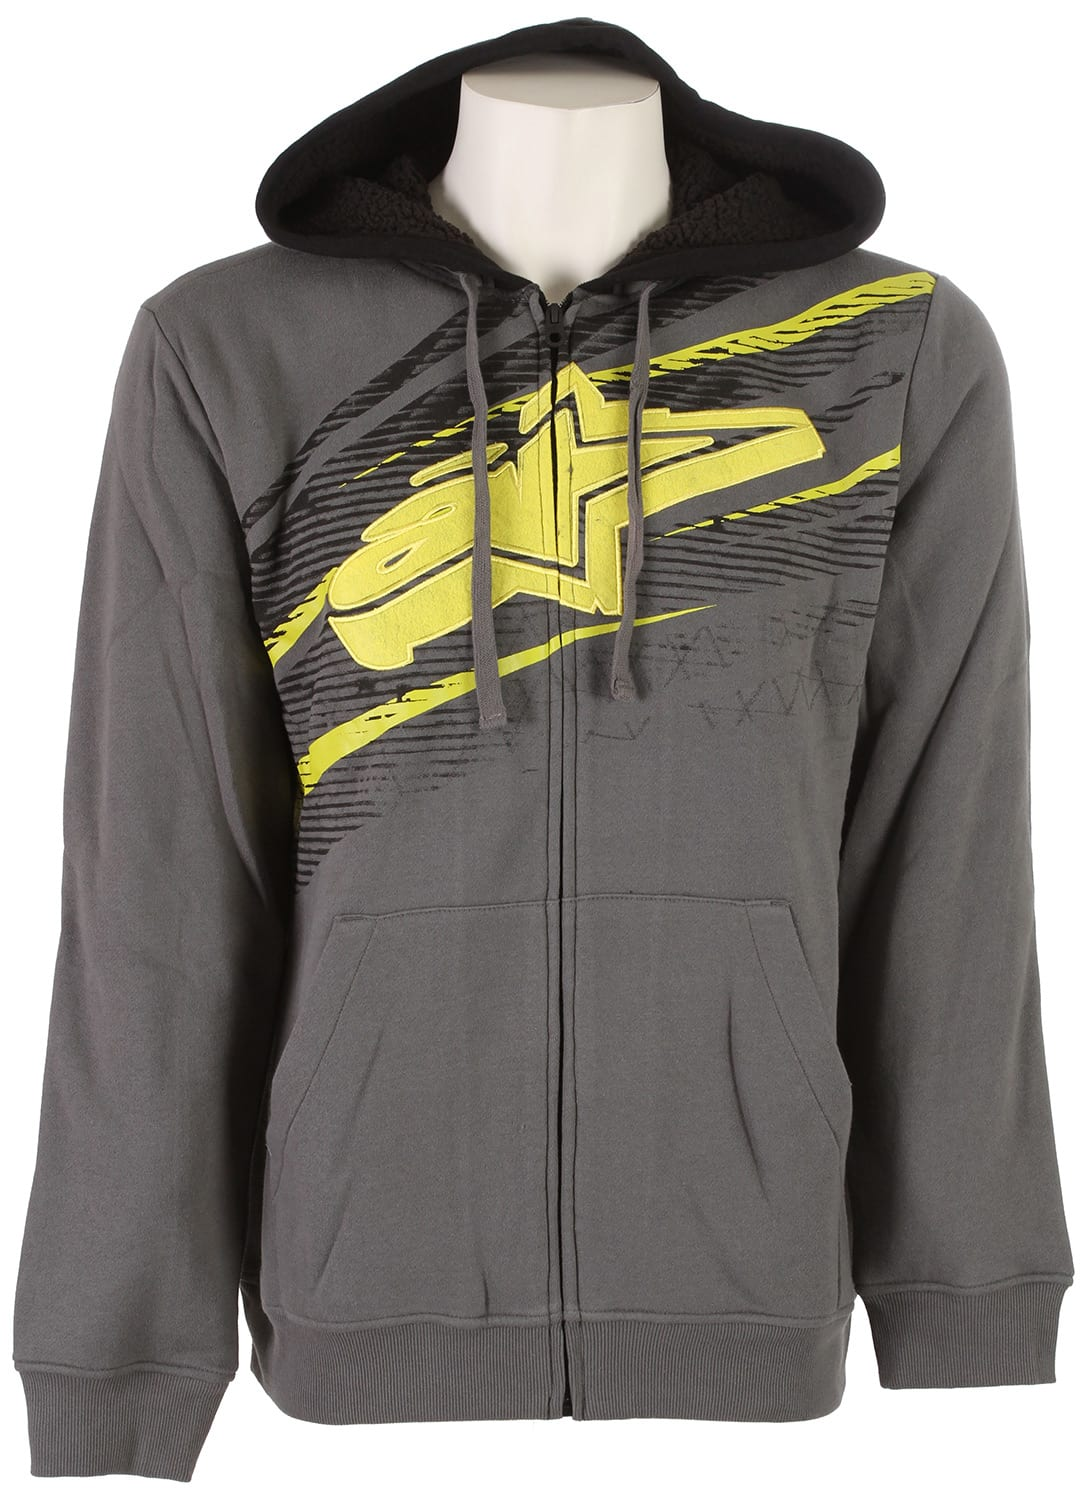 Alpinestars Undercut Zip Hoodie at3uncz04ch14zz-alpinestars-hoodies